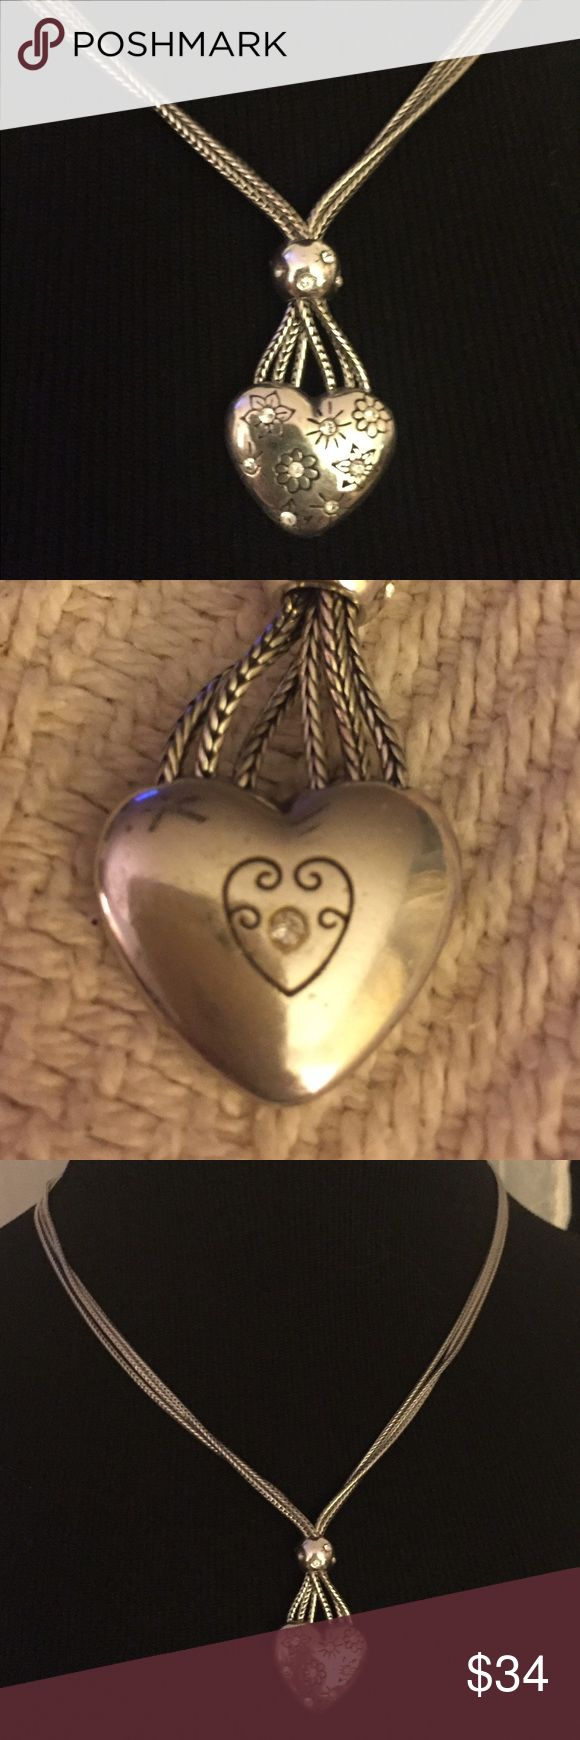 Beautiful Brighton Heart Necklace Authentic retired Brighton heart necklace. It is in very good condition.  it will come with a Brighton jewelry pouch. Brighton Jewelry Necklaces